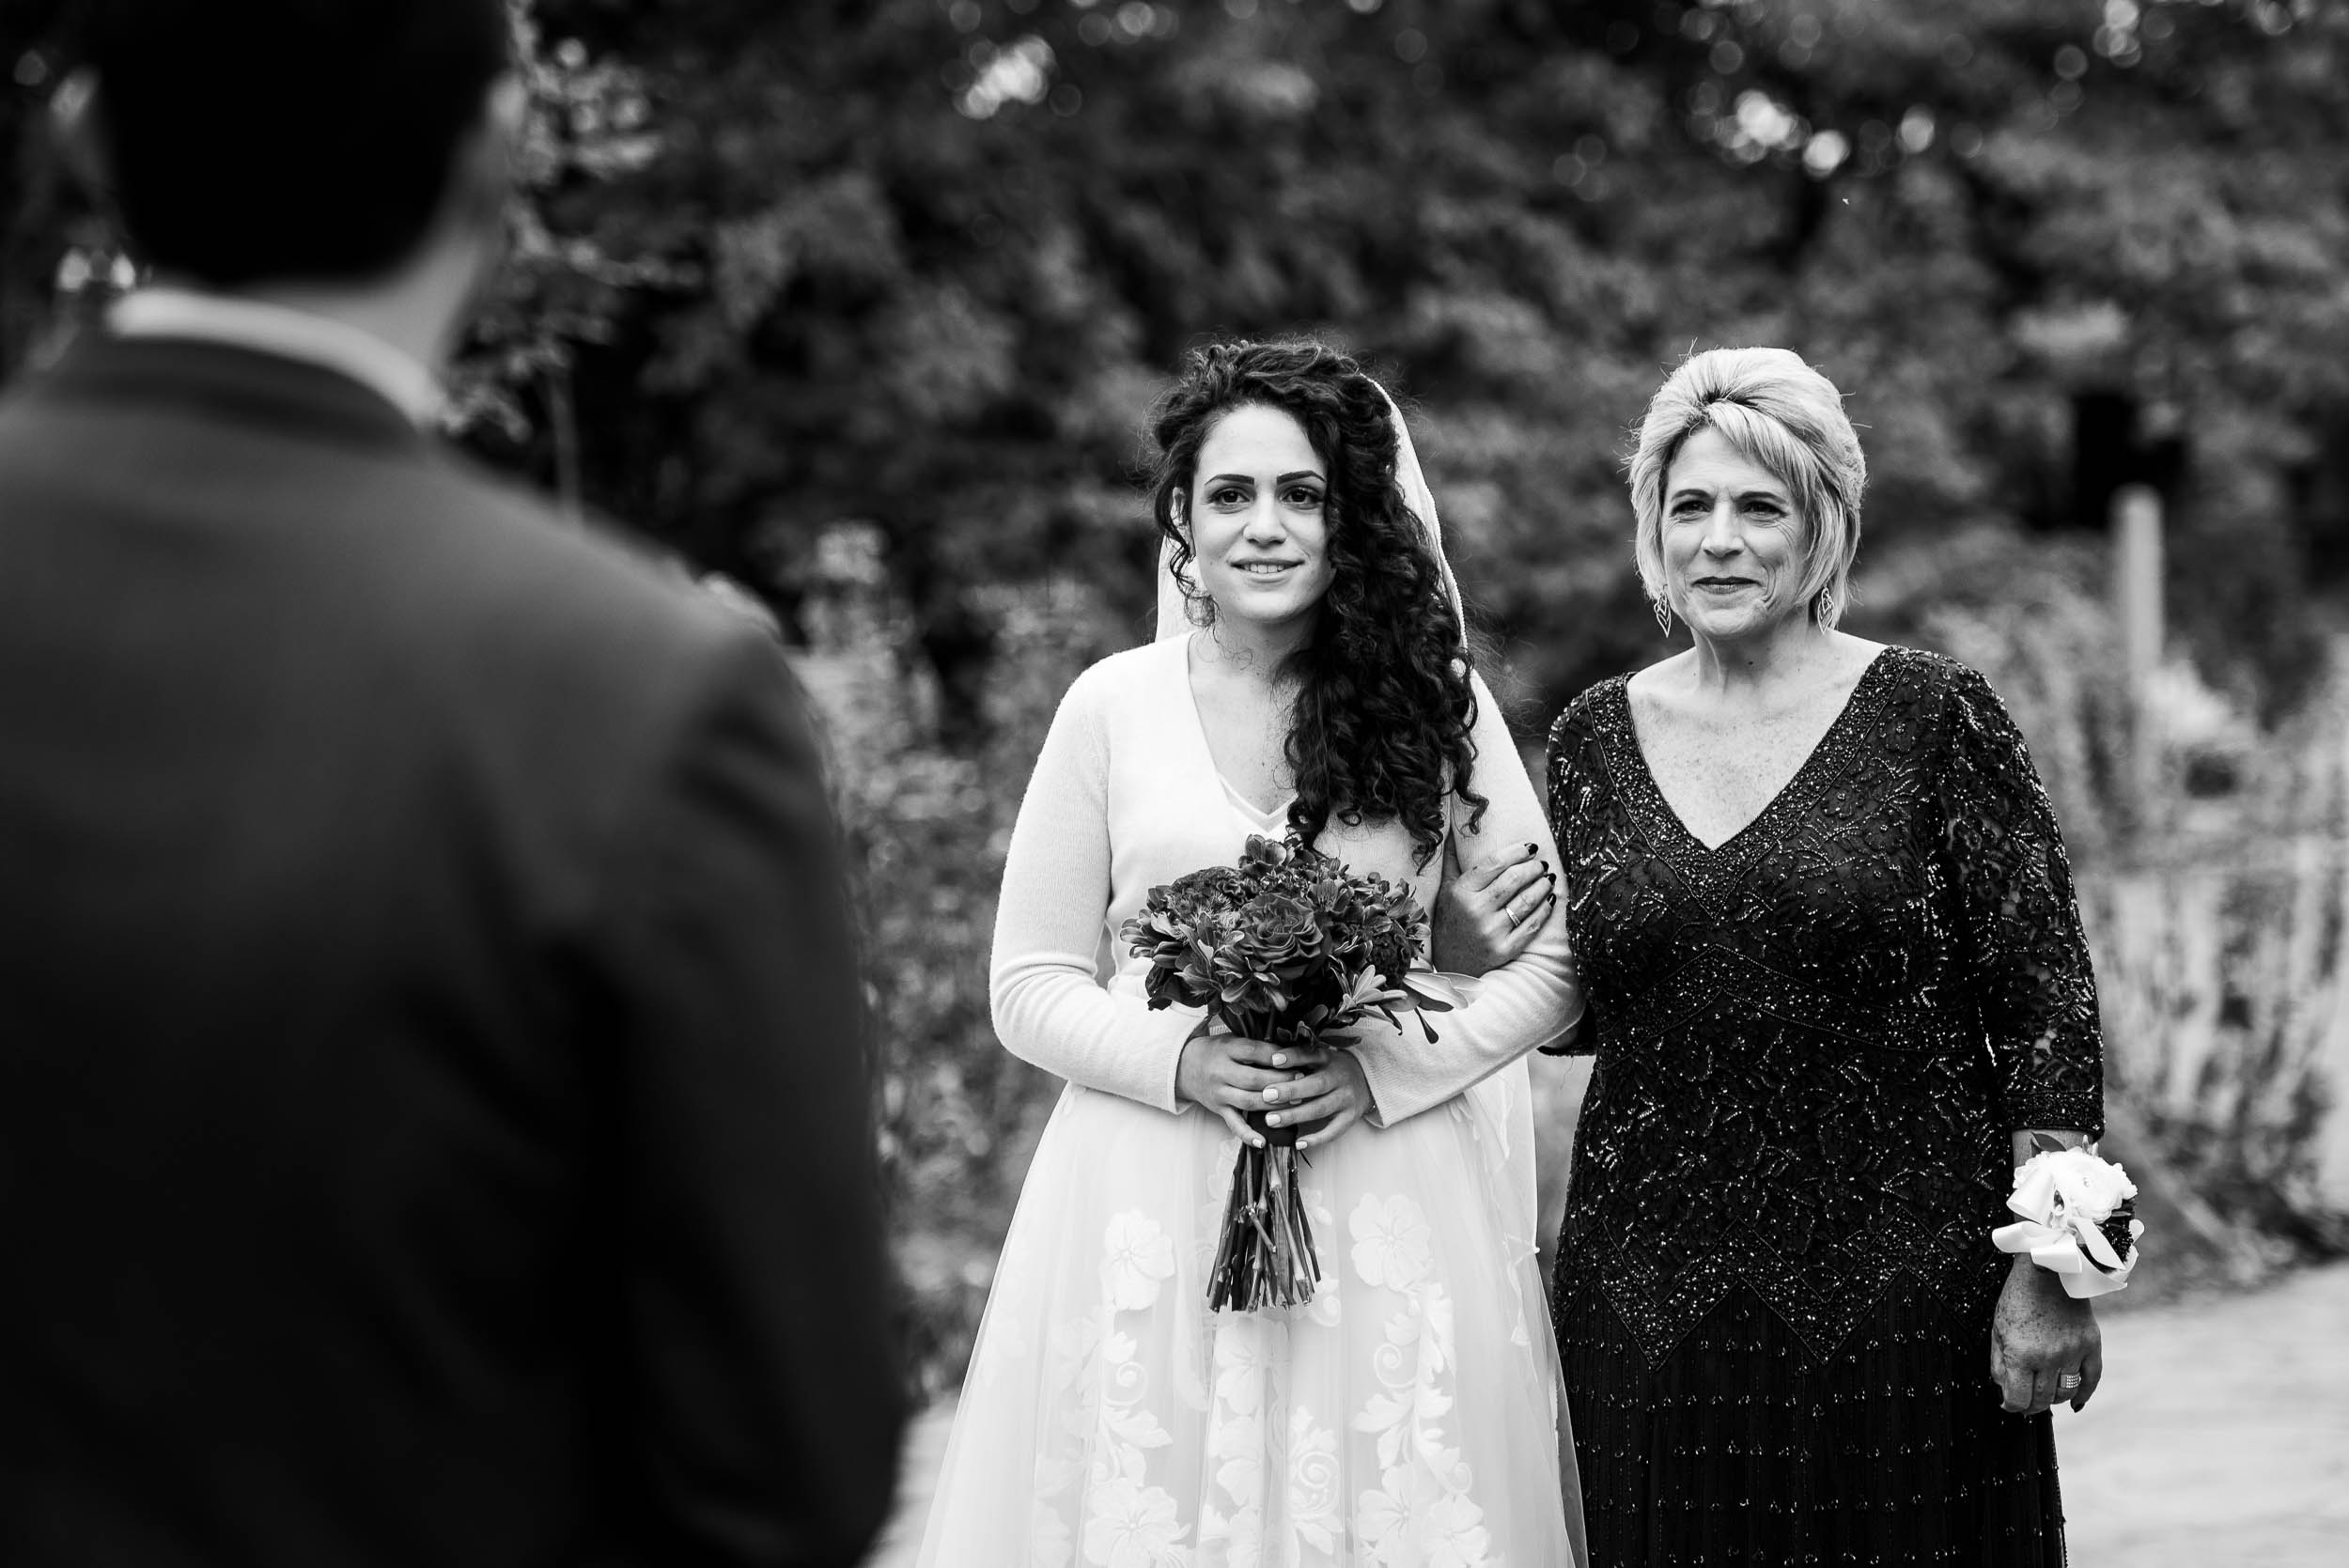 Bride and groom meet at Jewish ceremony during an Independence Grove Chicago wedding.